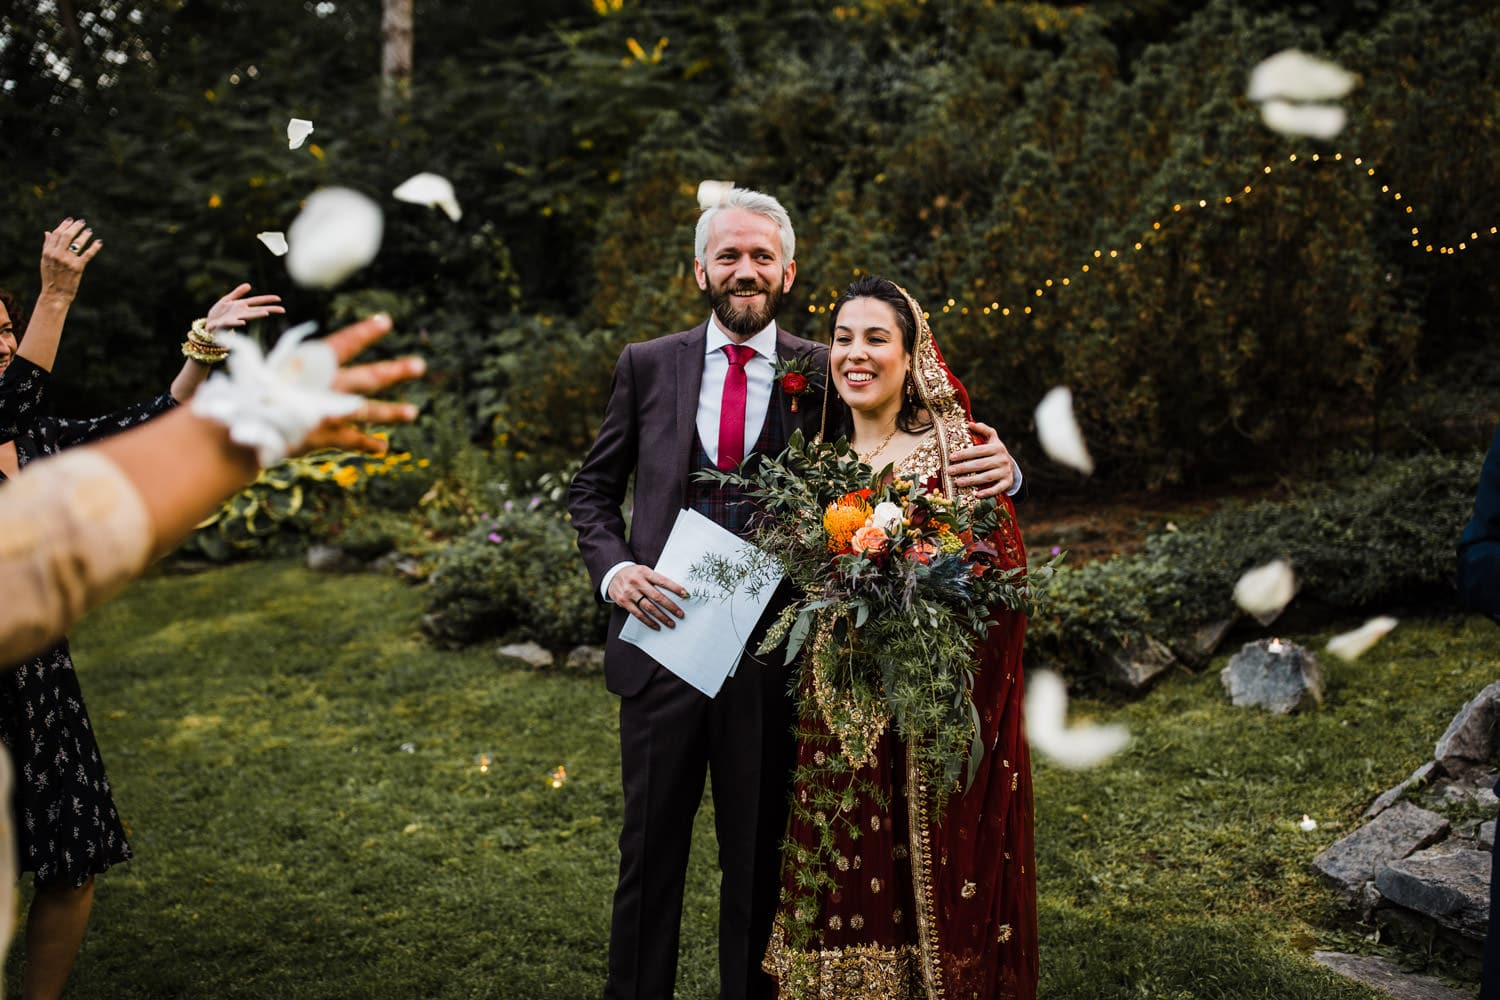 guests throw rose petals at bride and groom - rockcliffe park intimate ceremony